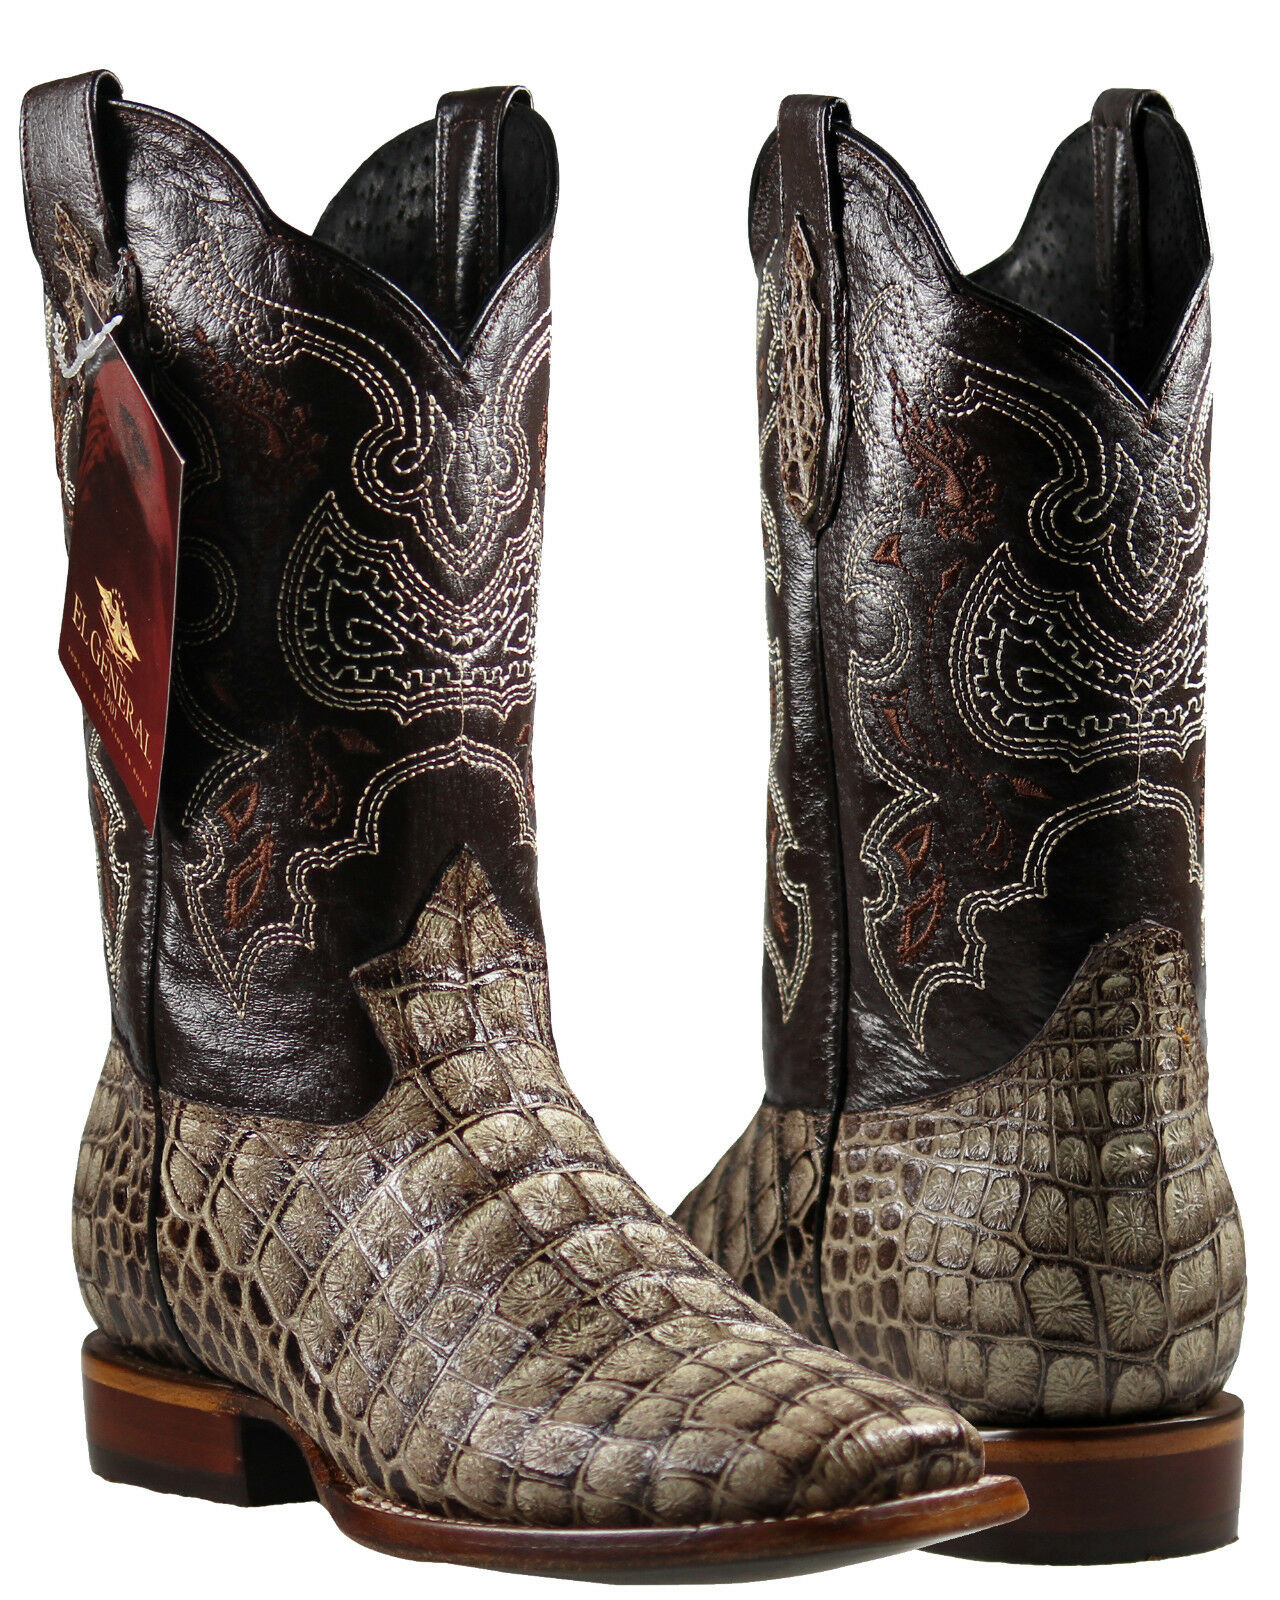 Men's Cowboy Boots El General Caiman Print color Coffee